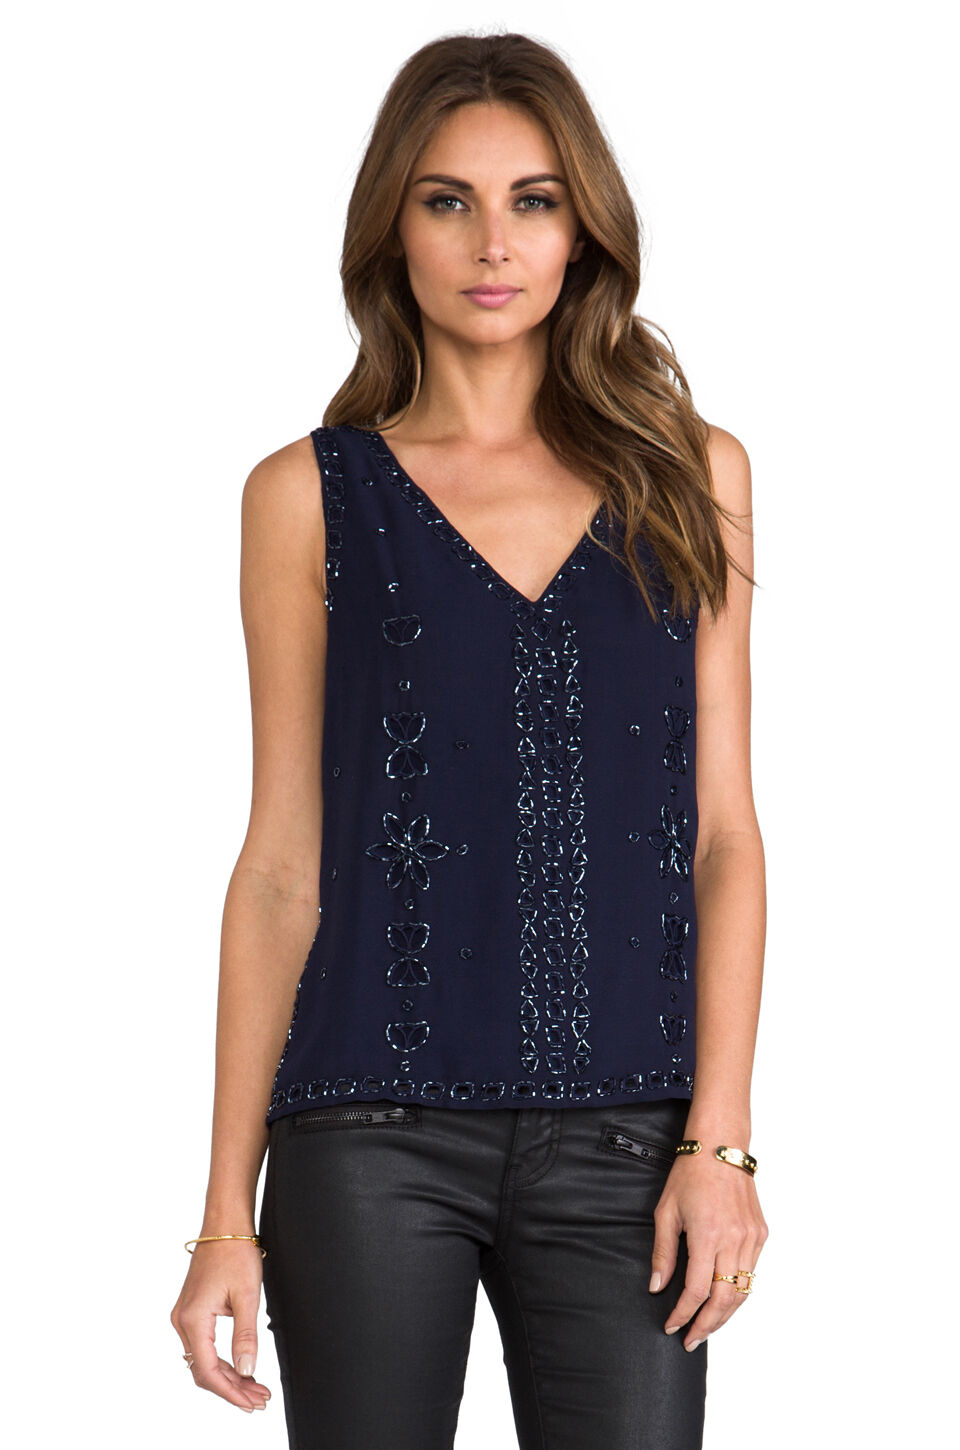 Greylin NWT Gatsby Beaded Top Sizes XS, S, M